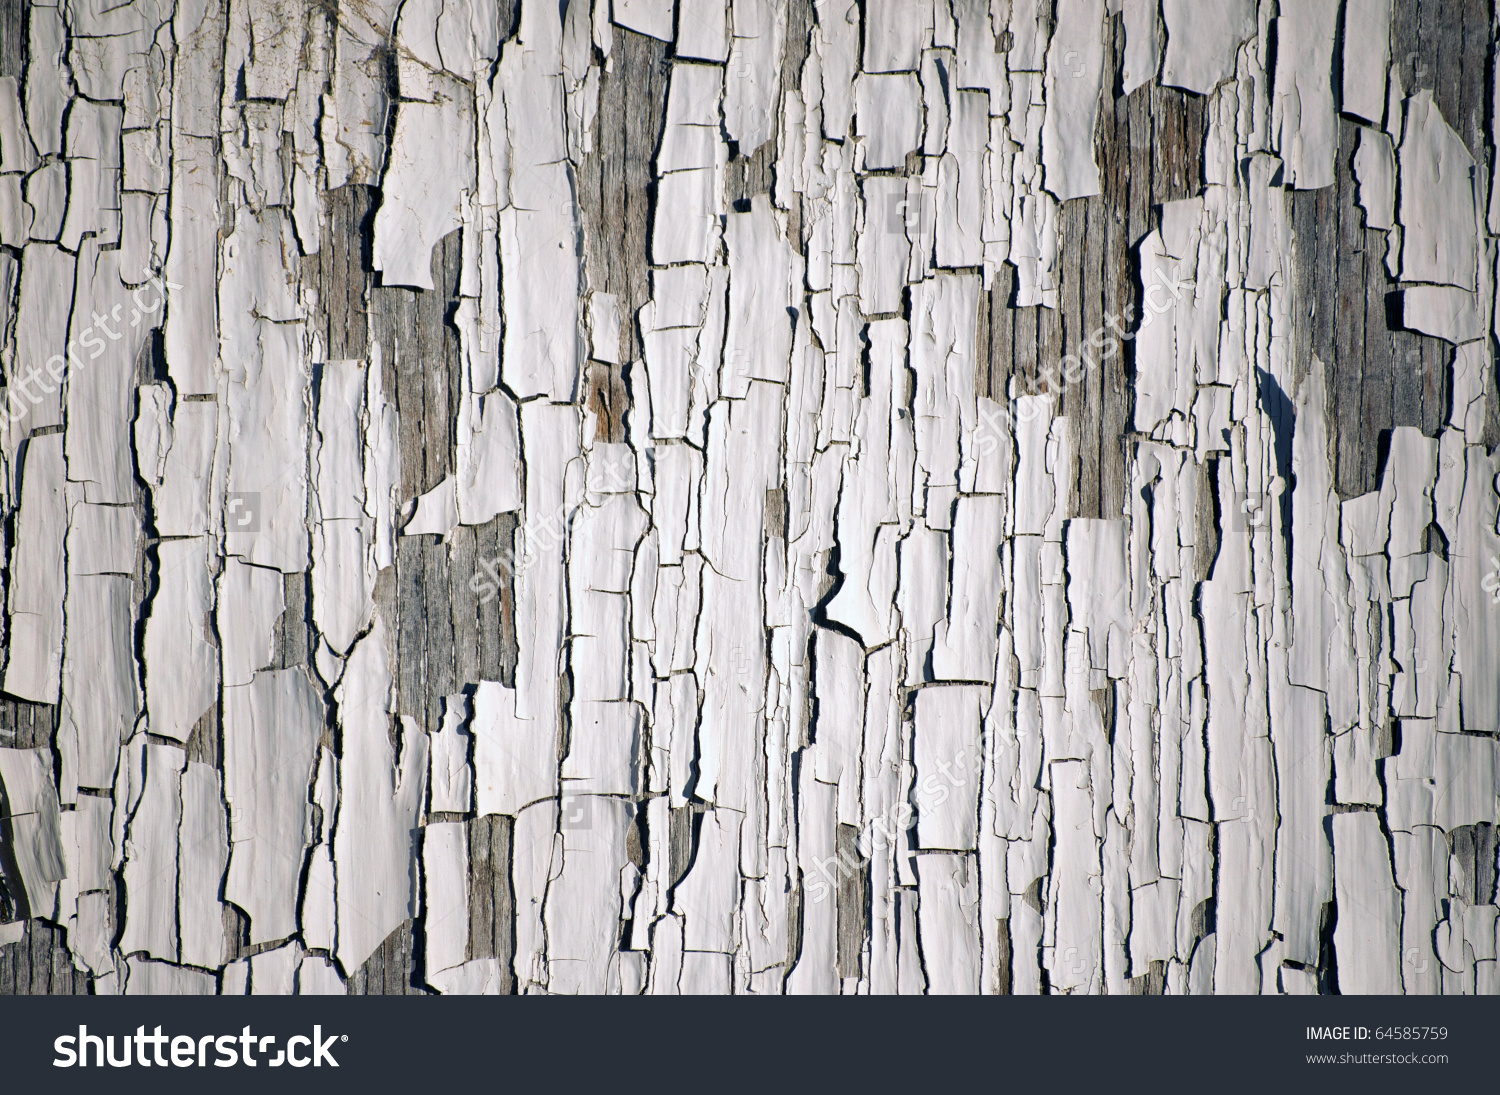 Background Of White, Peeling Paint On An Old Wall Stock Photo.